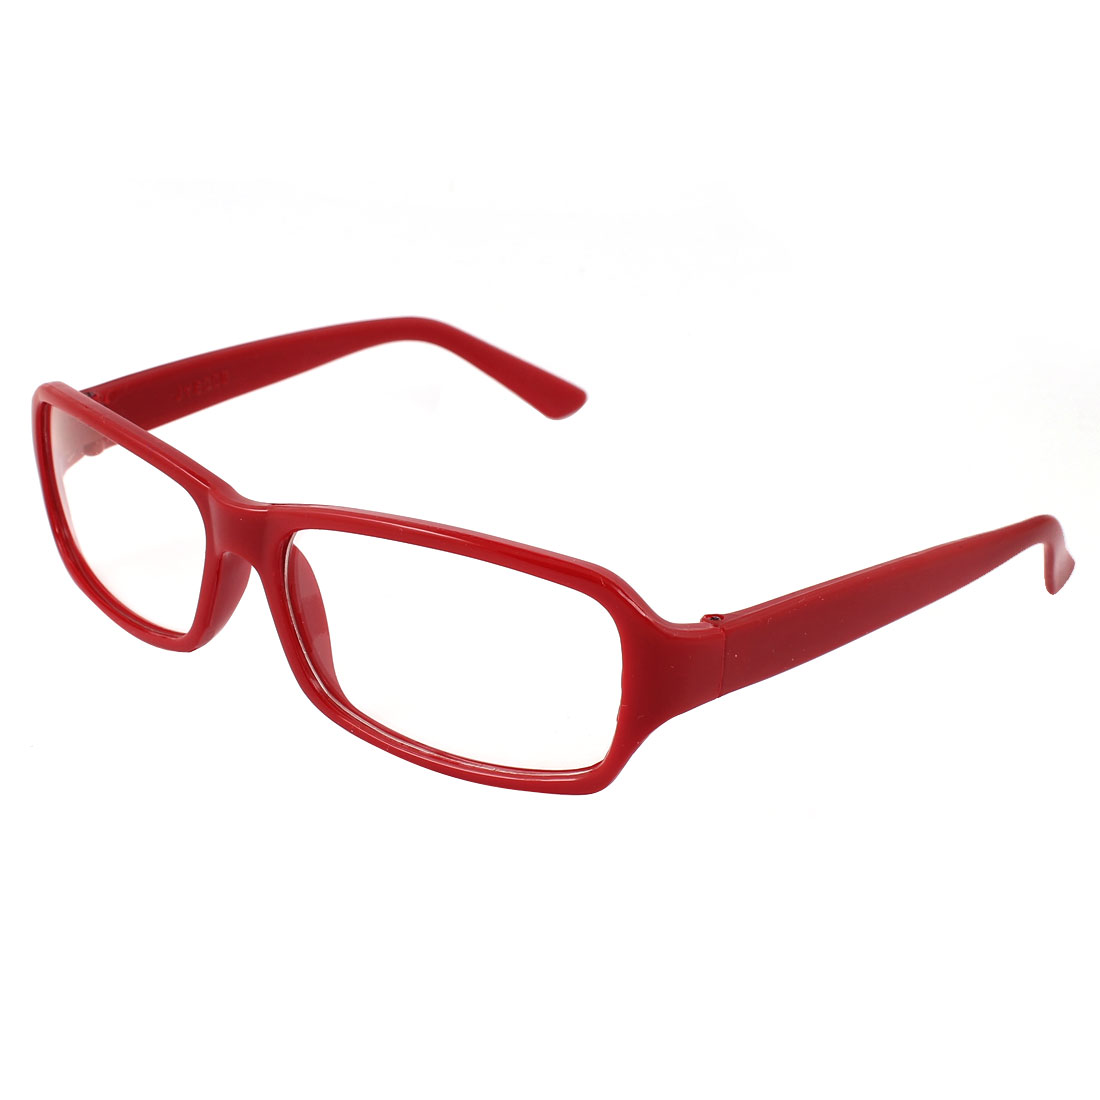 Clear Rectangular Lens Burgundy Plastic Full Rim Spectacles for Women